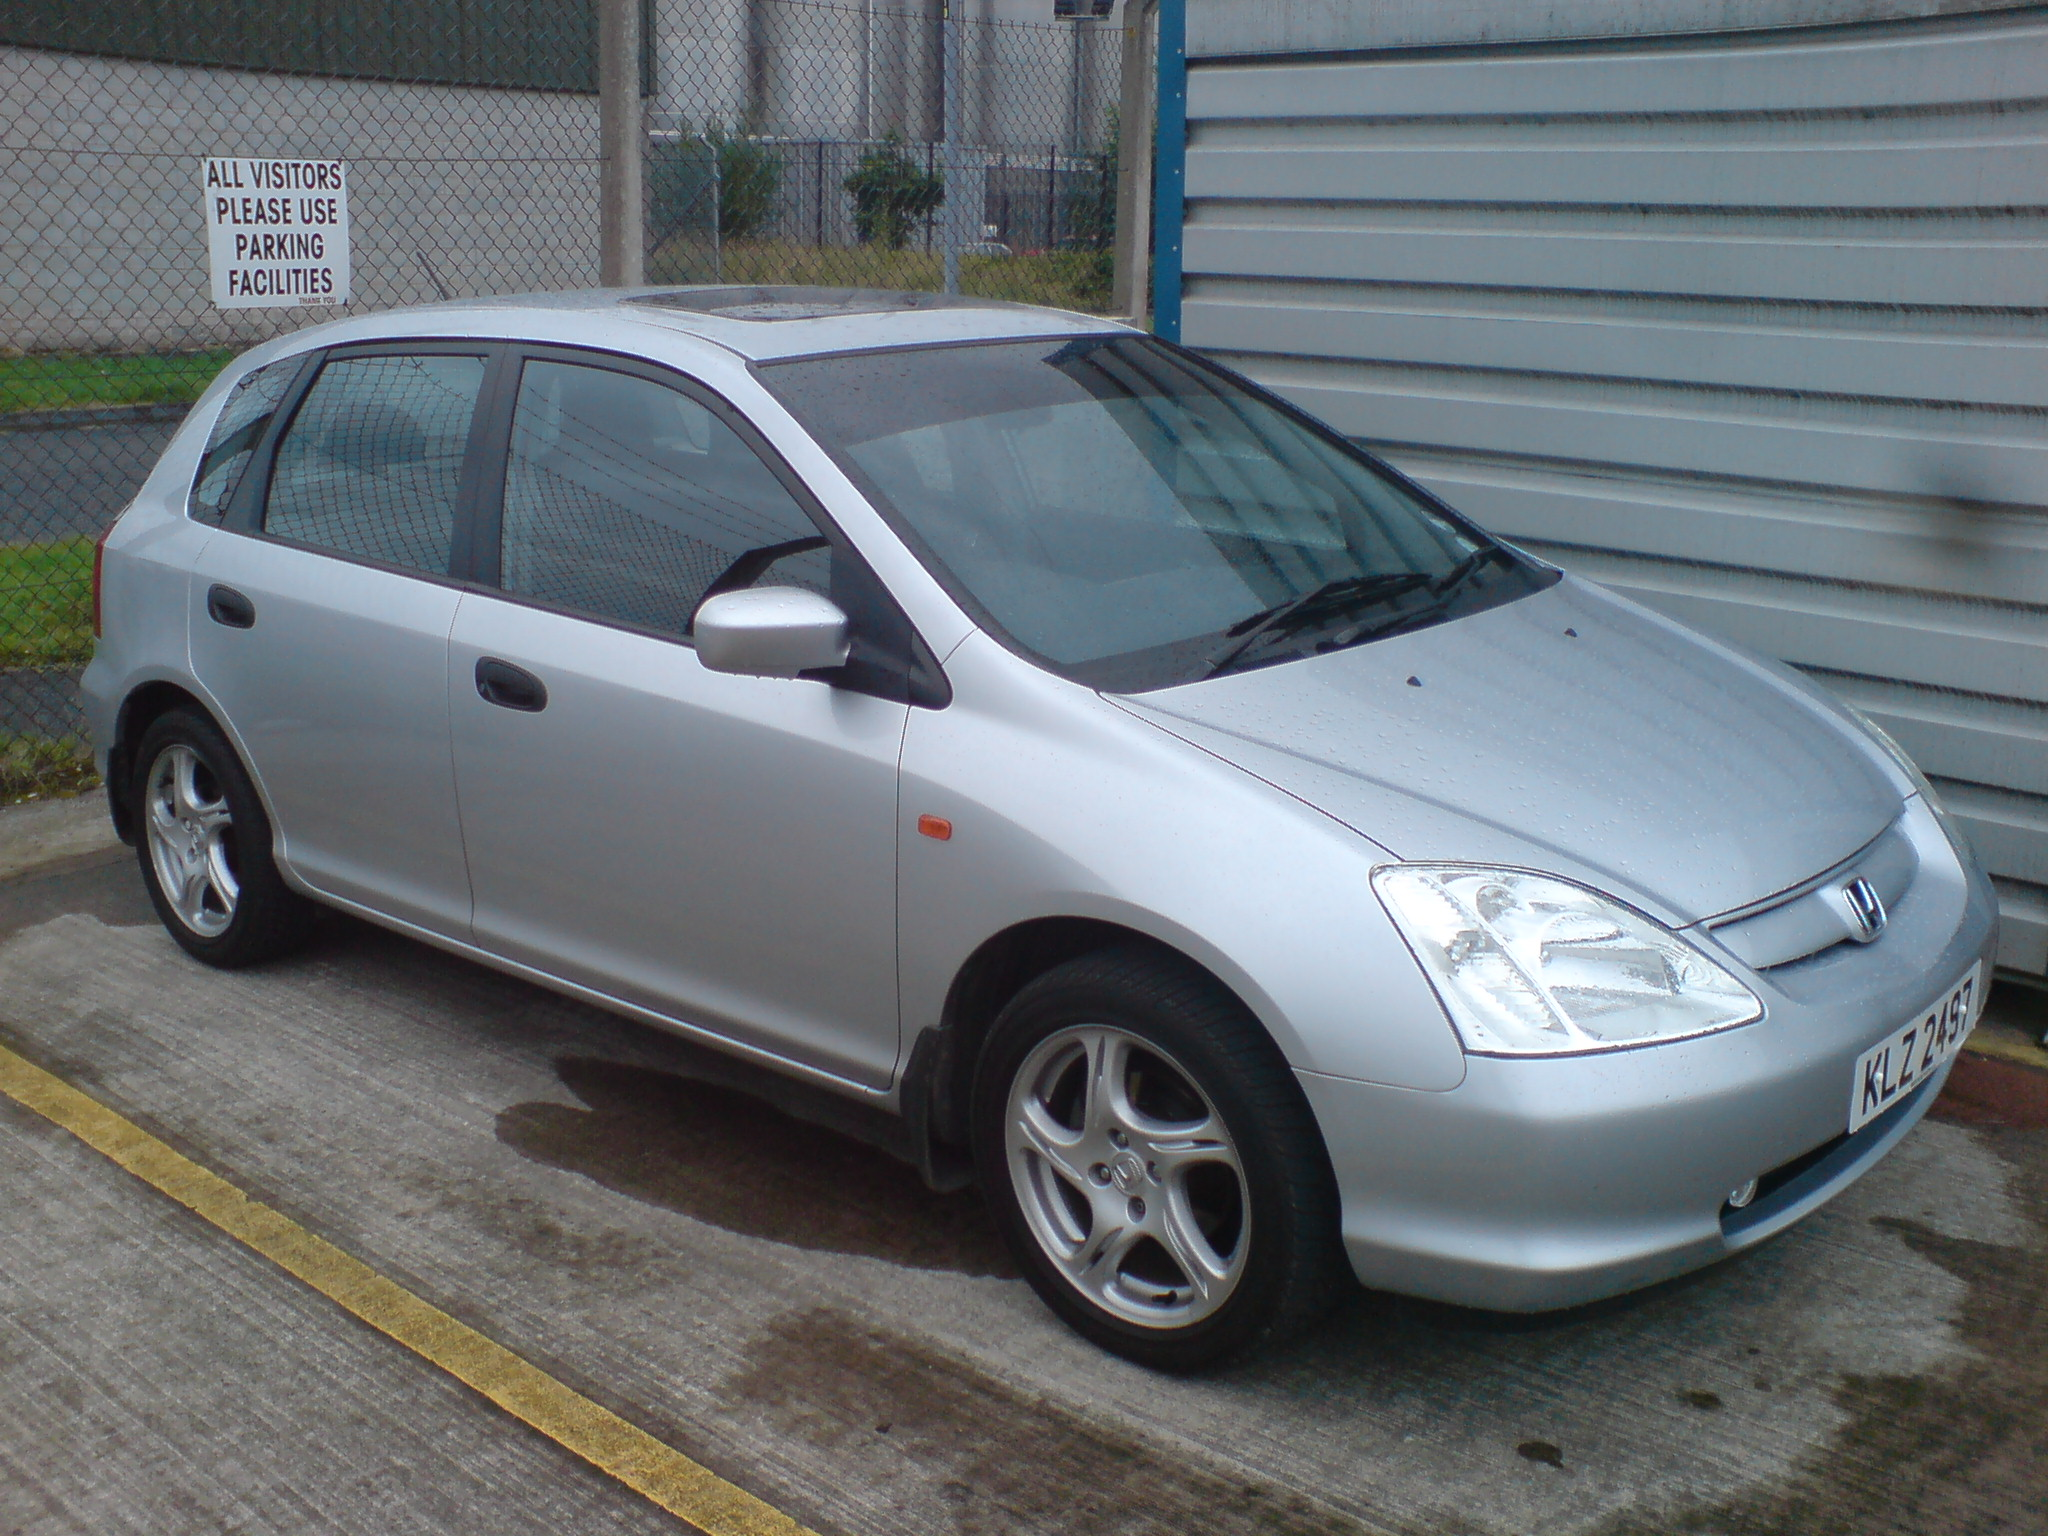 FileHonda Civic 1600cc Vtec 2002 NIjpg  Wikimedia Commons